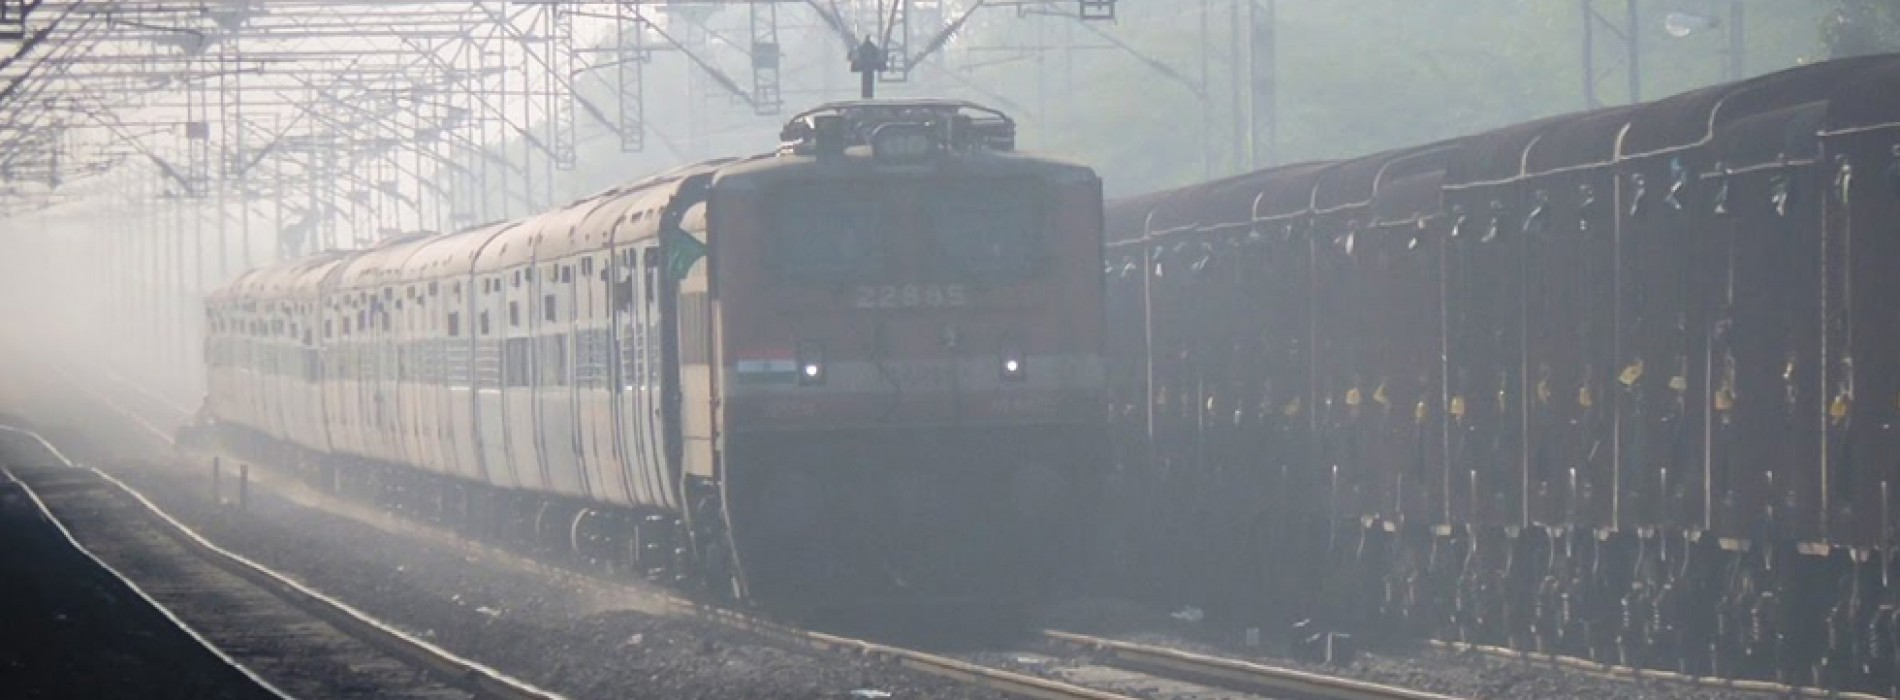 Indian Railways cancels 24 trains, reschedules 23 due to fog